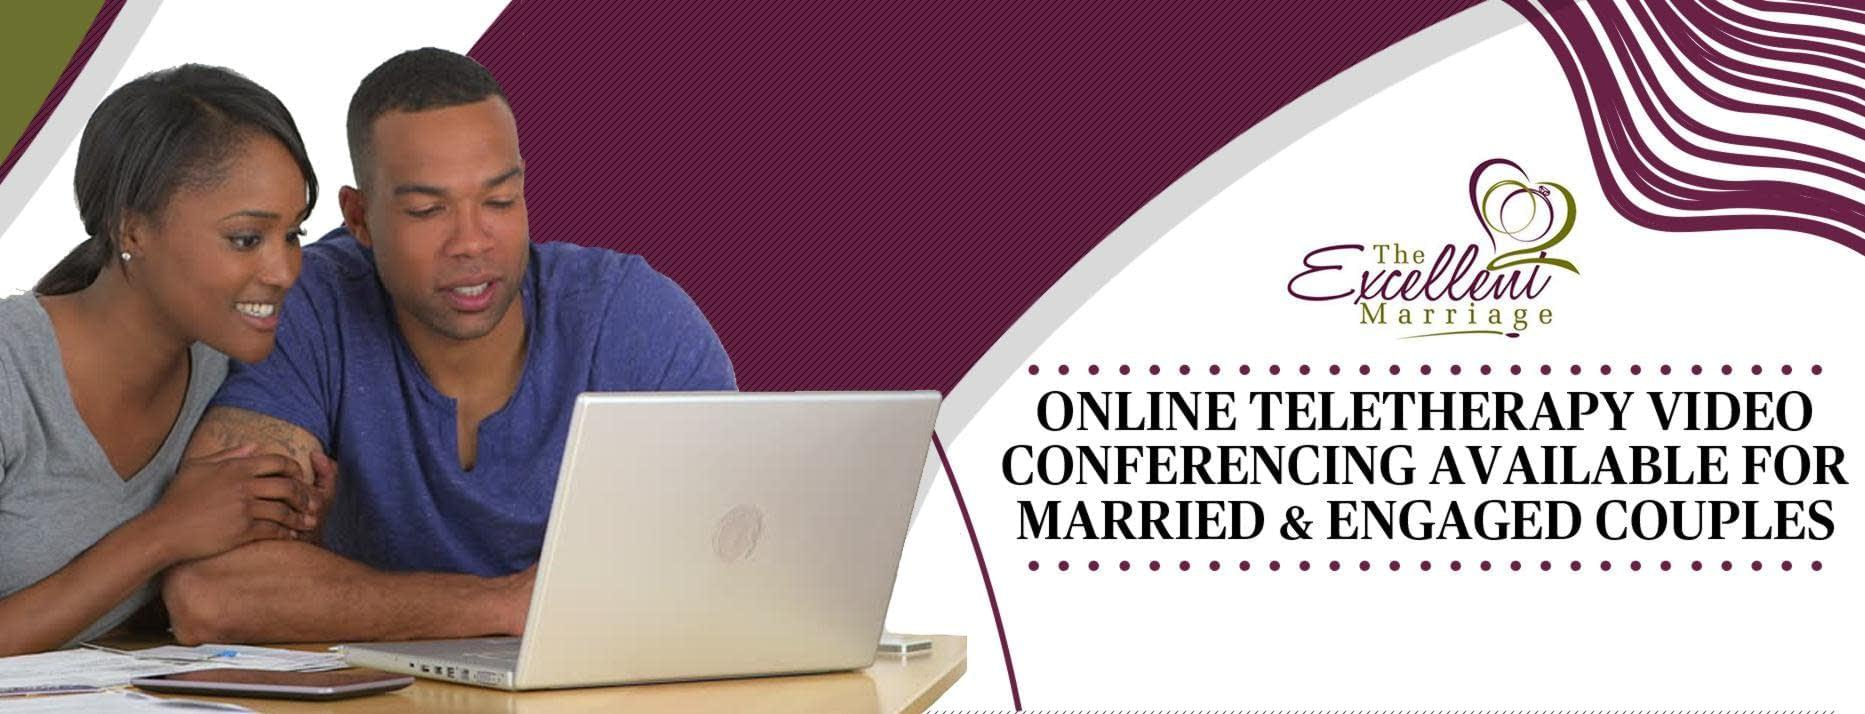 Marriage Counseling Online